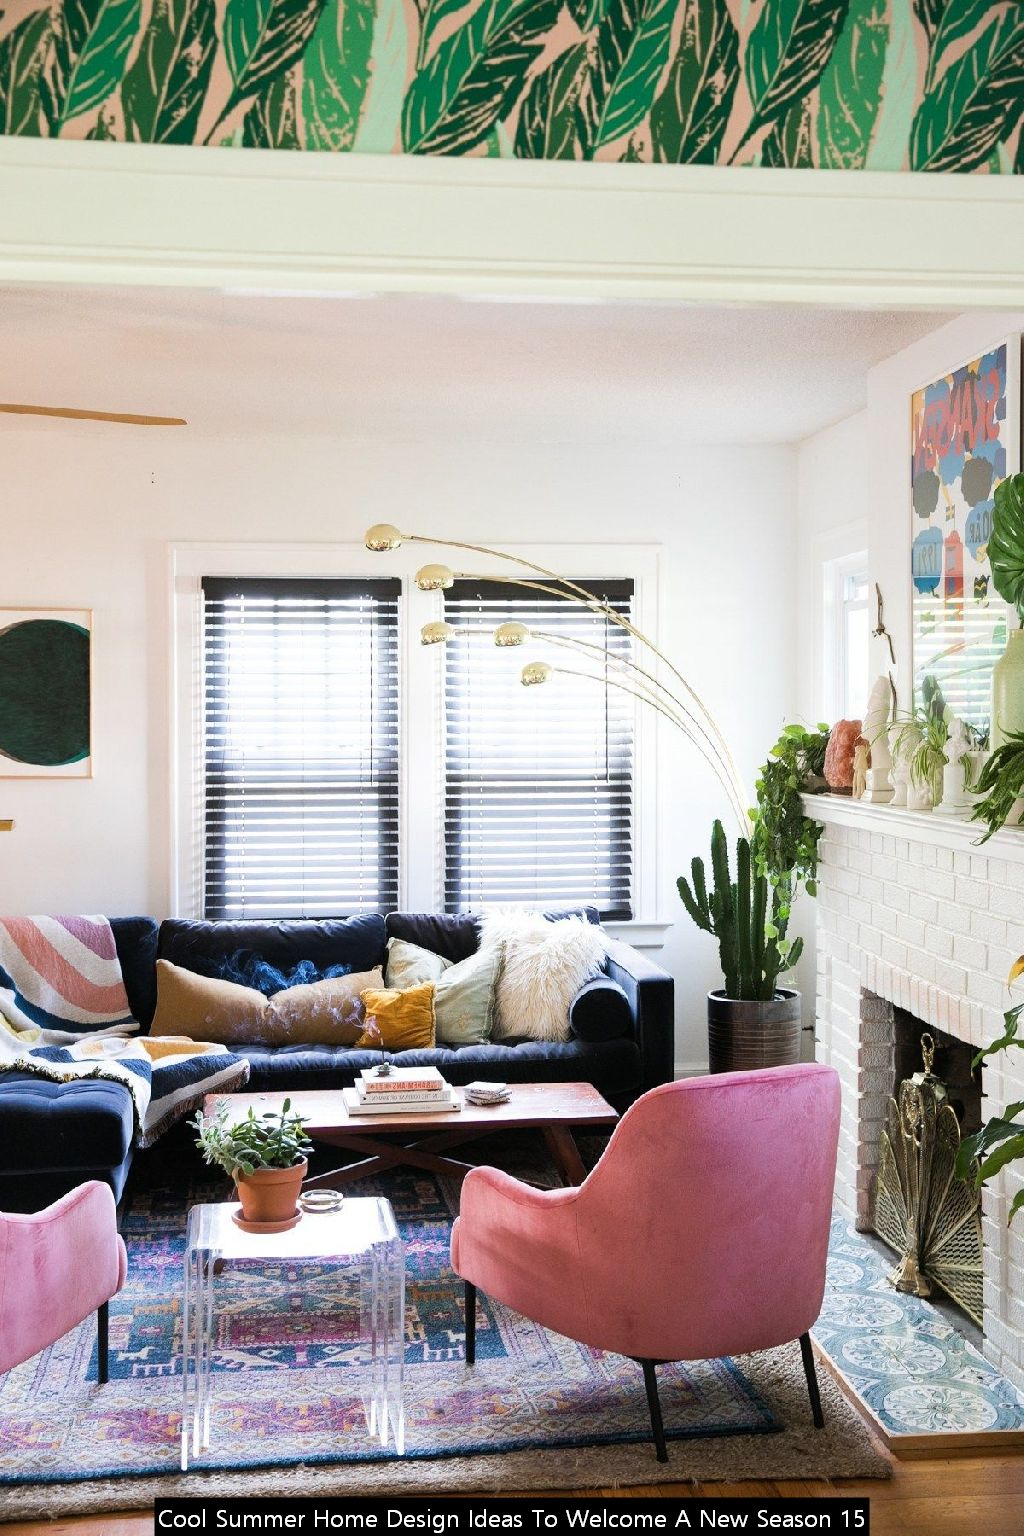 Cool Summer Home Design Ideas To Welcome A New Season 15